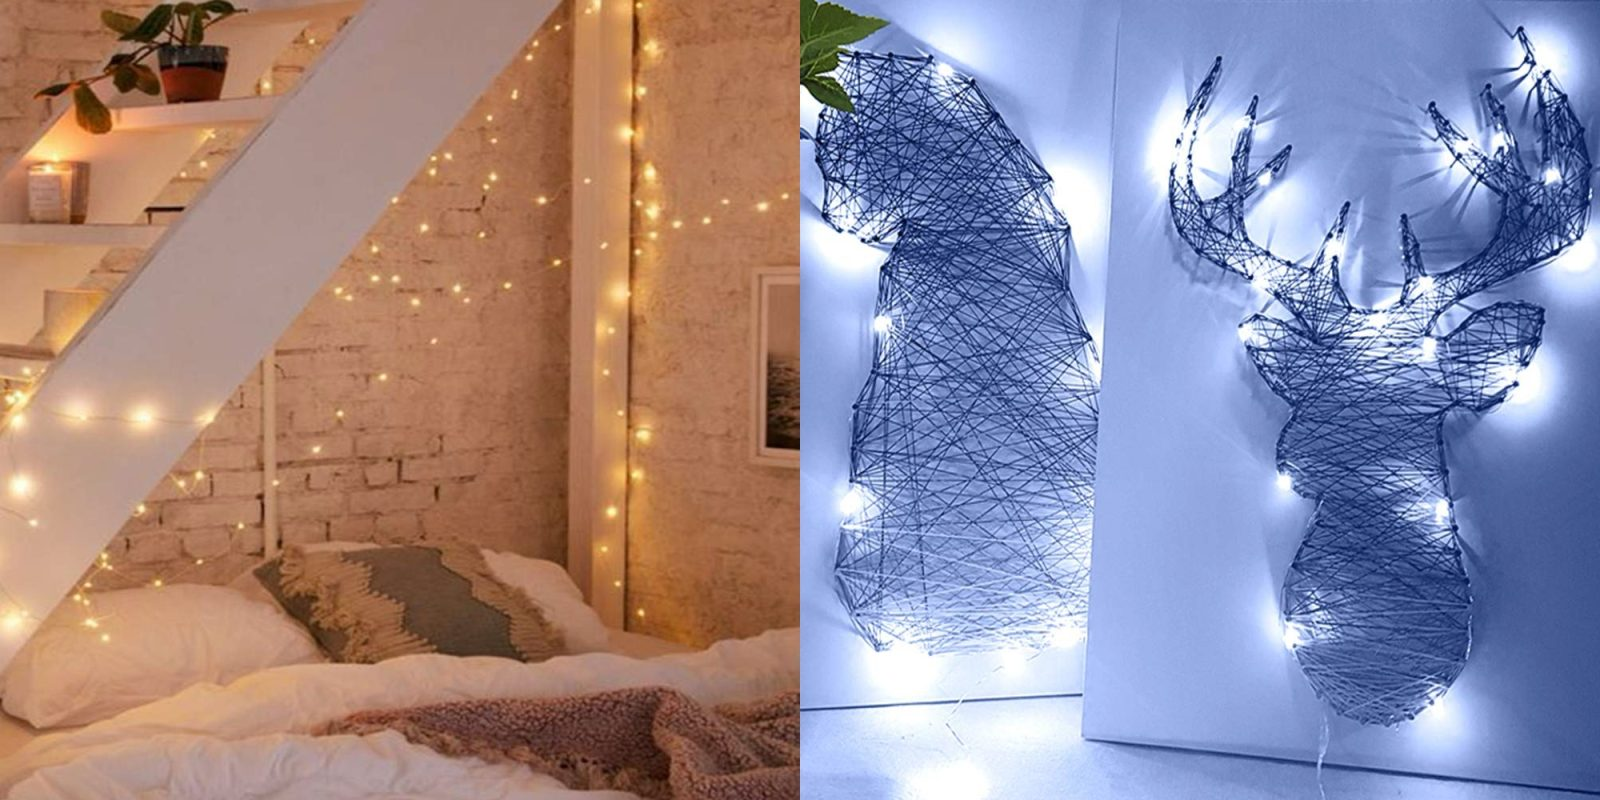 Upgrade your outdoor space with LED fairy lights from $5.50 Prime shipped